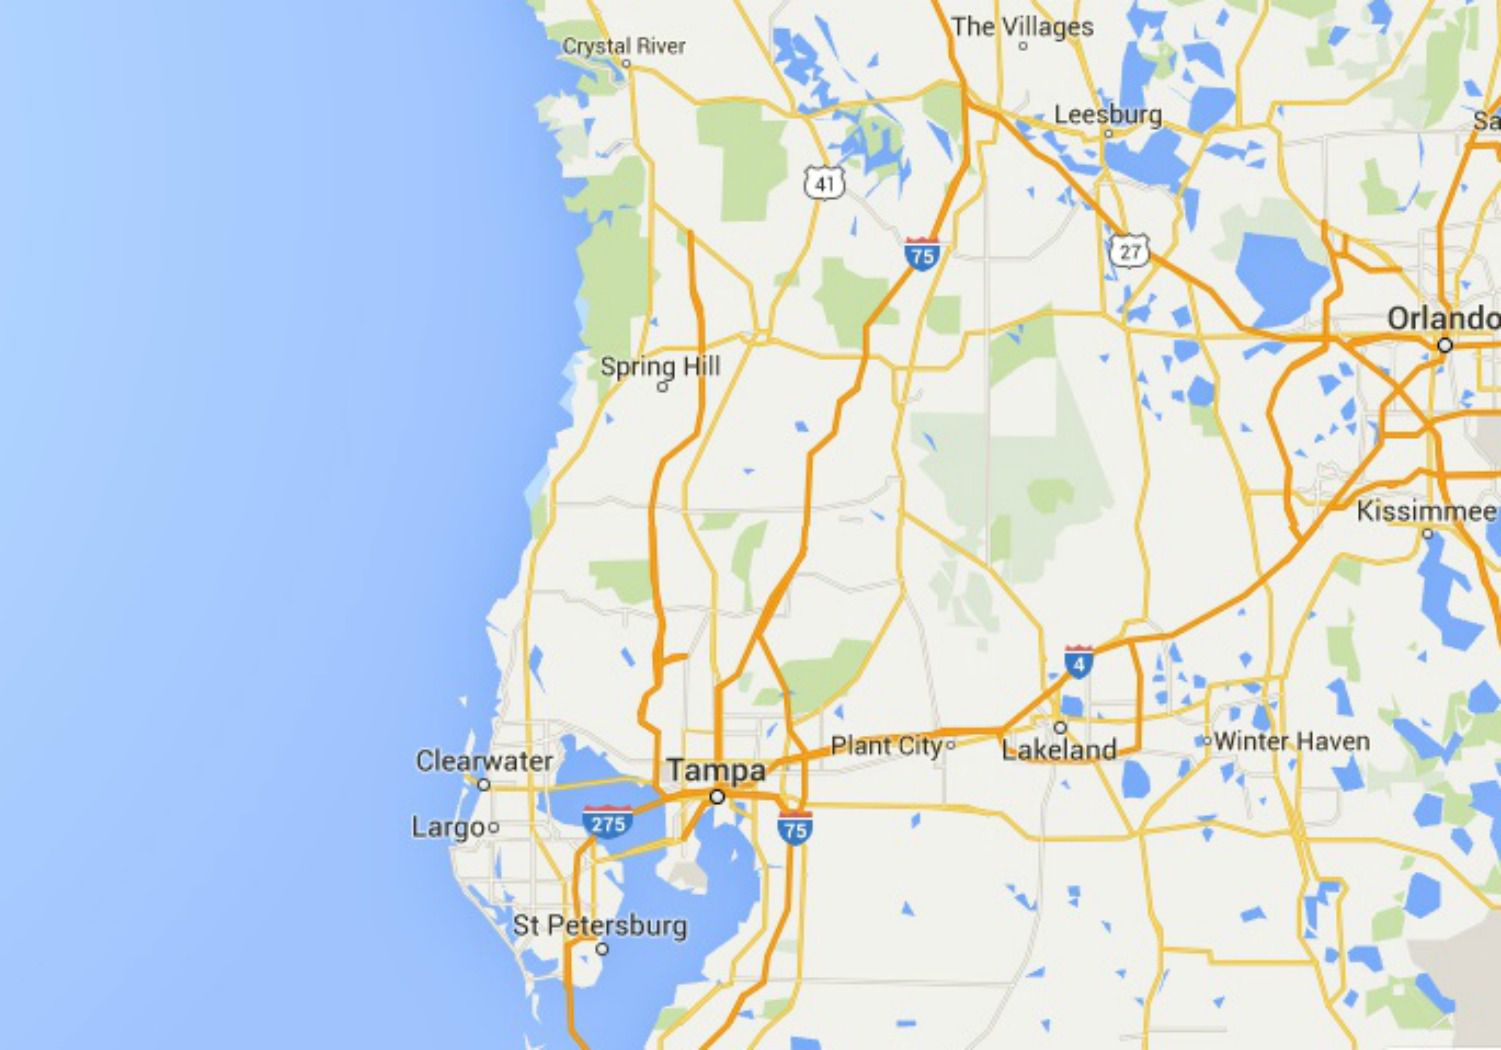 Map Of Florida Clearwater.Maps Of Florida Orlando Tampa Miami Keys And More